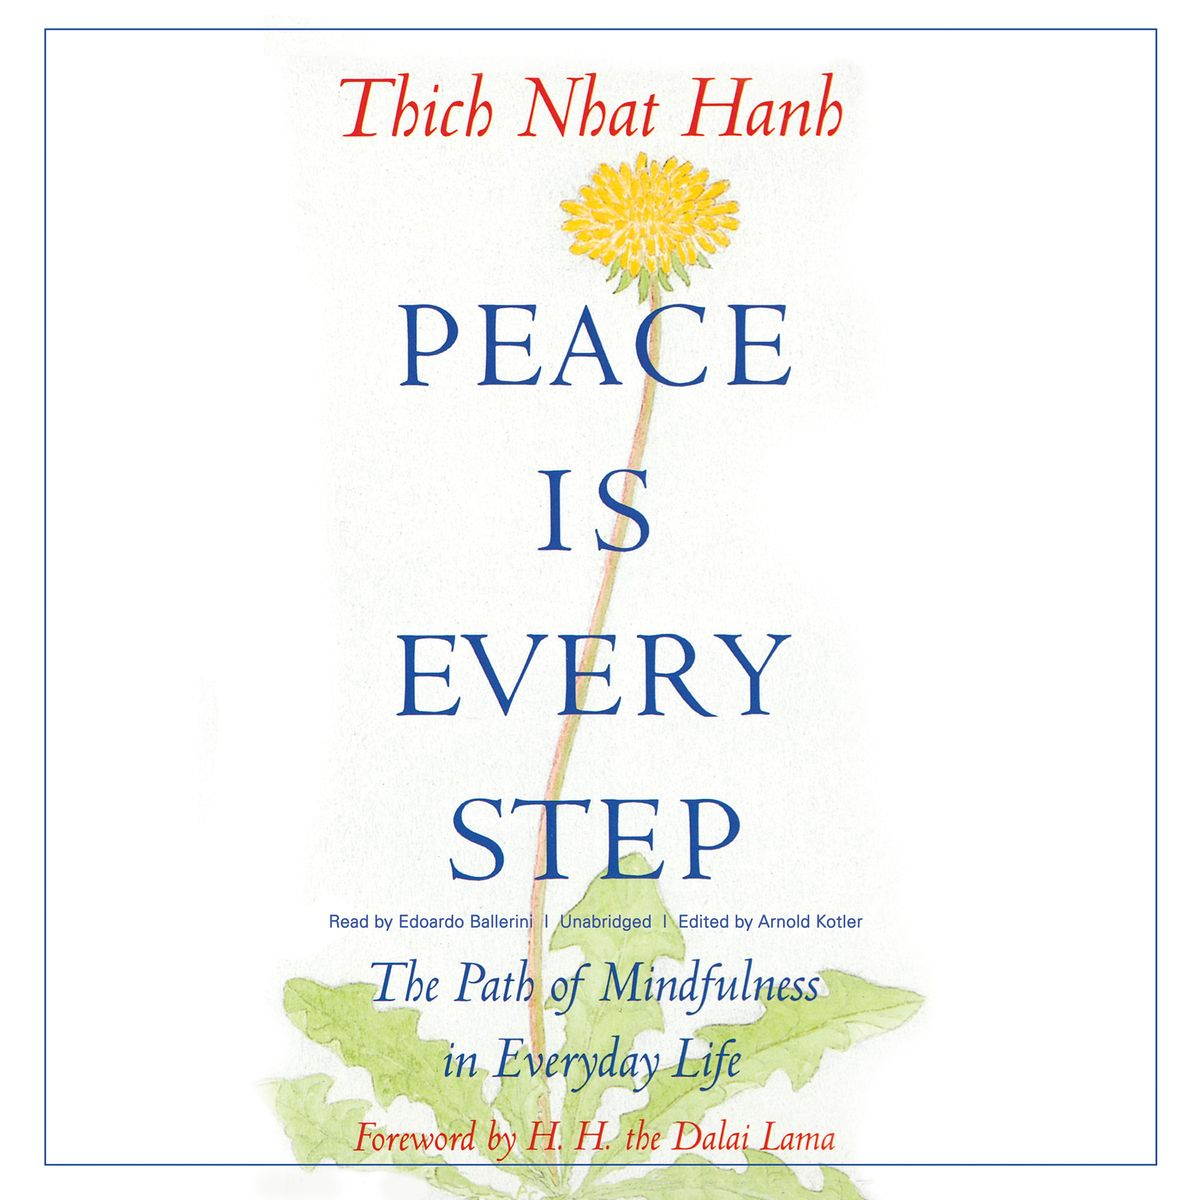 peace-is-every-step-2.jpg